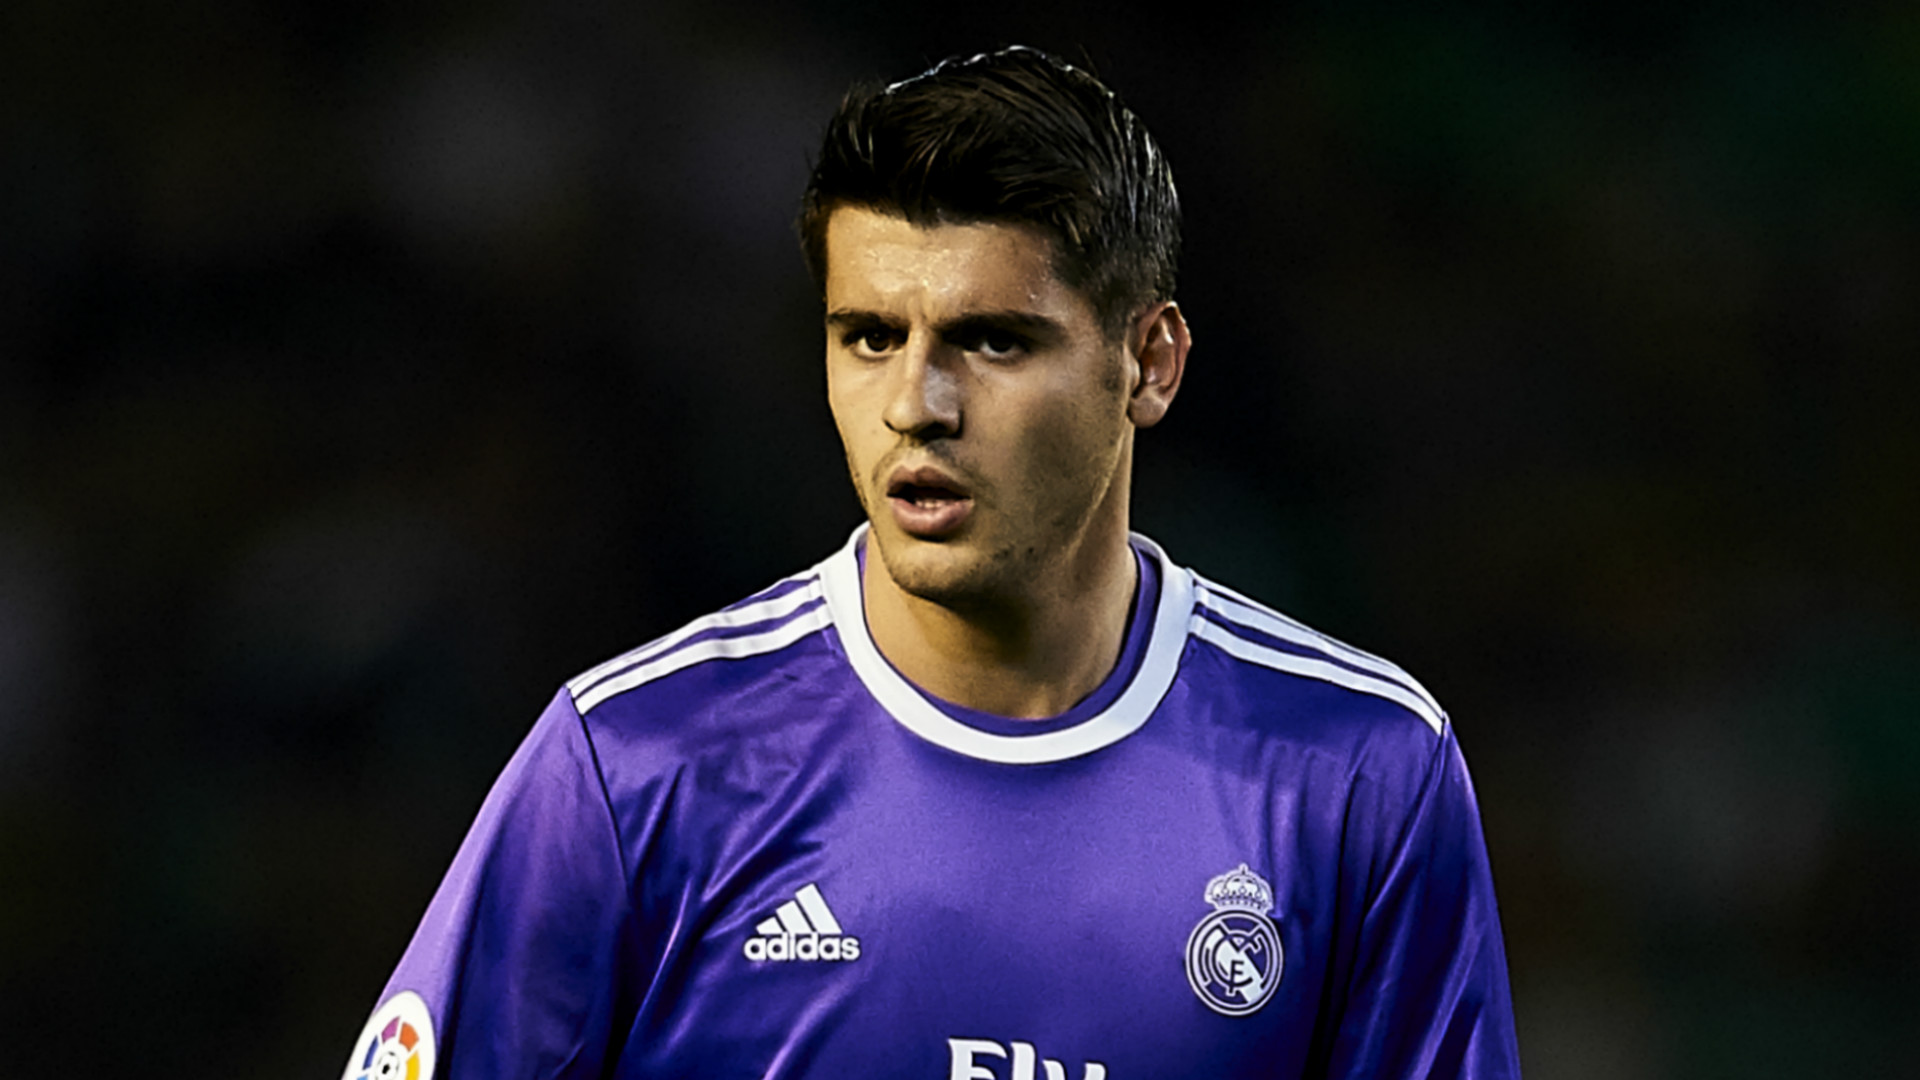 the goal was to leave morata pleased with pending chelsea move